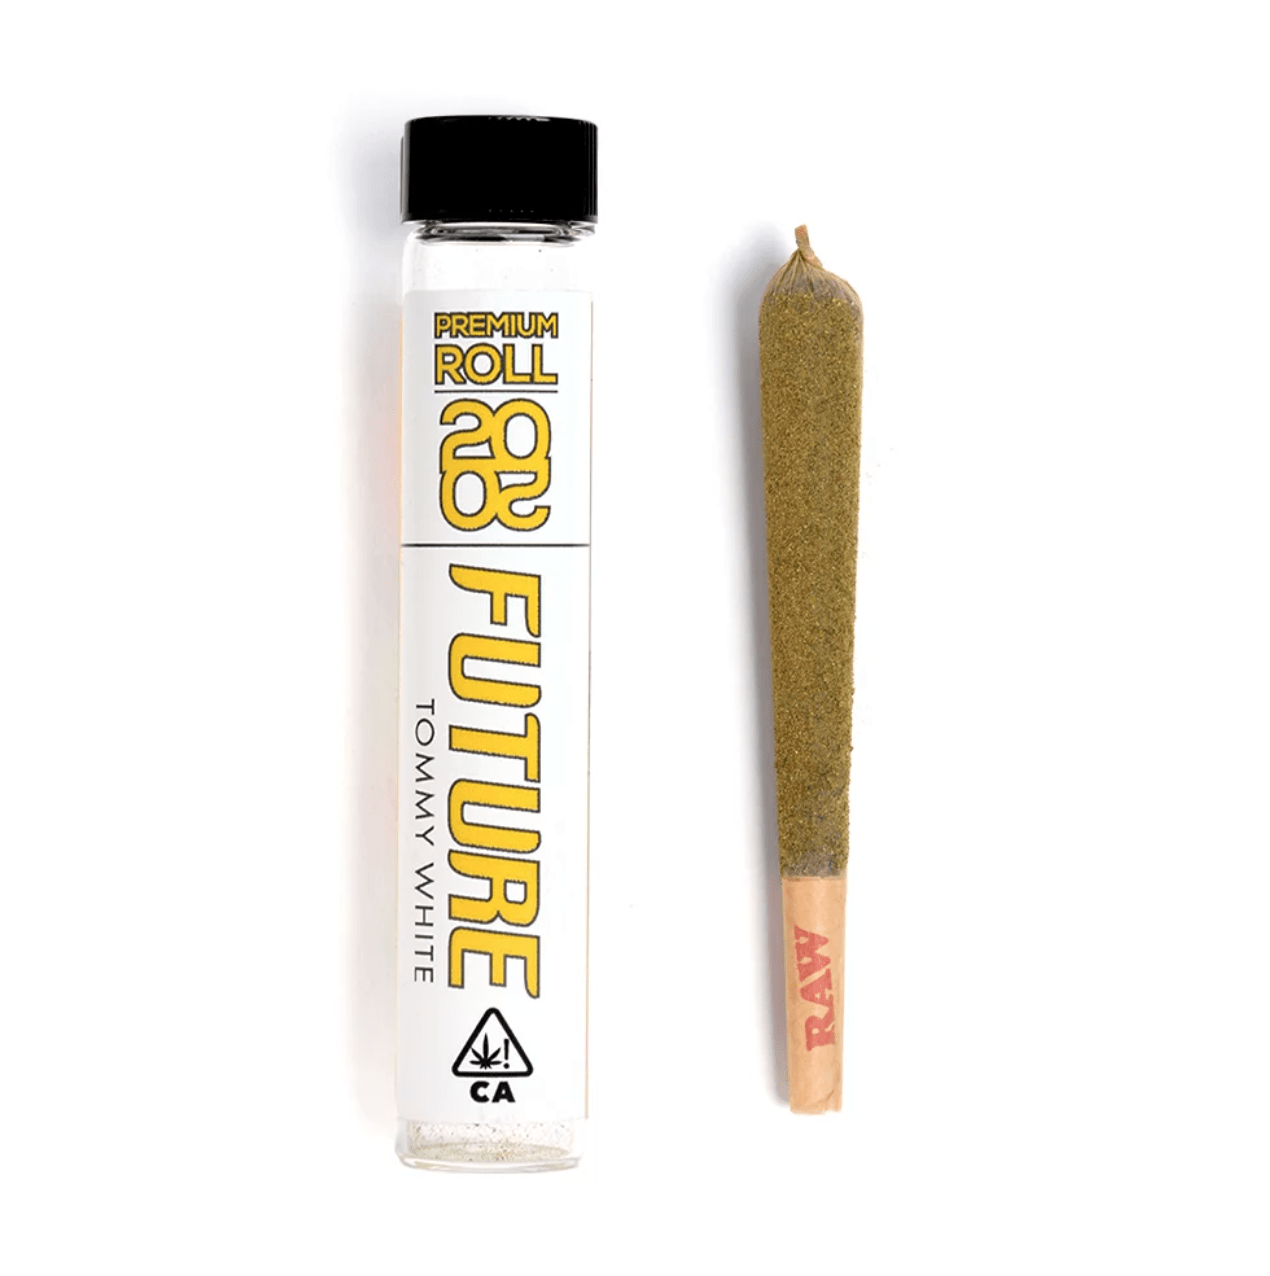 2020 Future Kief Premium Infused Pre-Roll - Tommy White - The Balloon Room